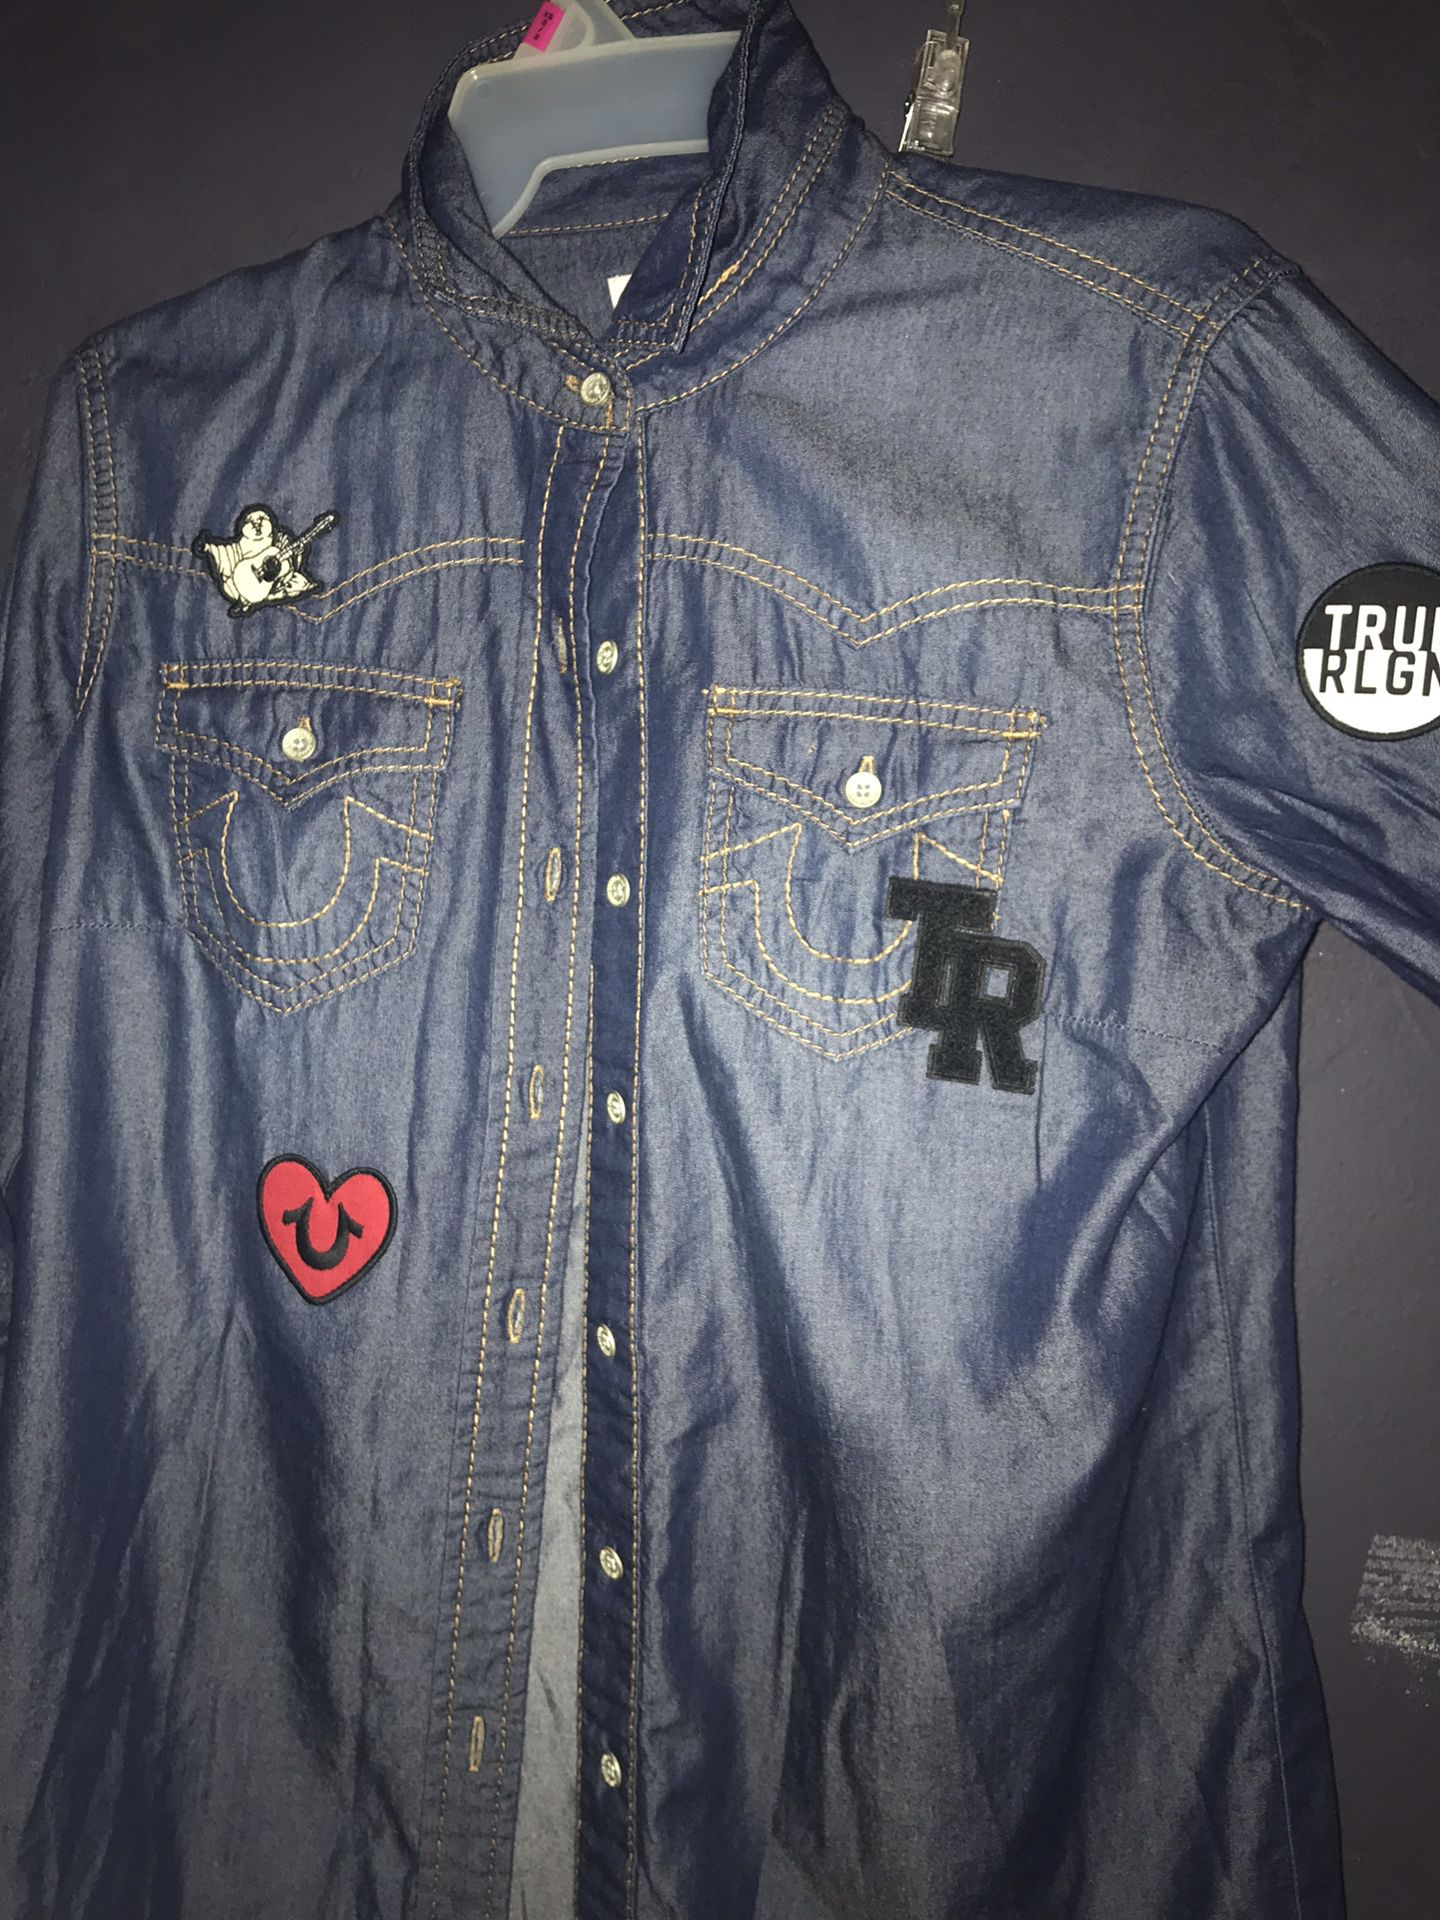 True Religion Outfit